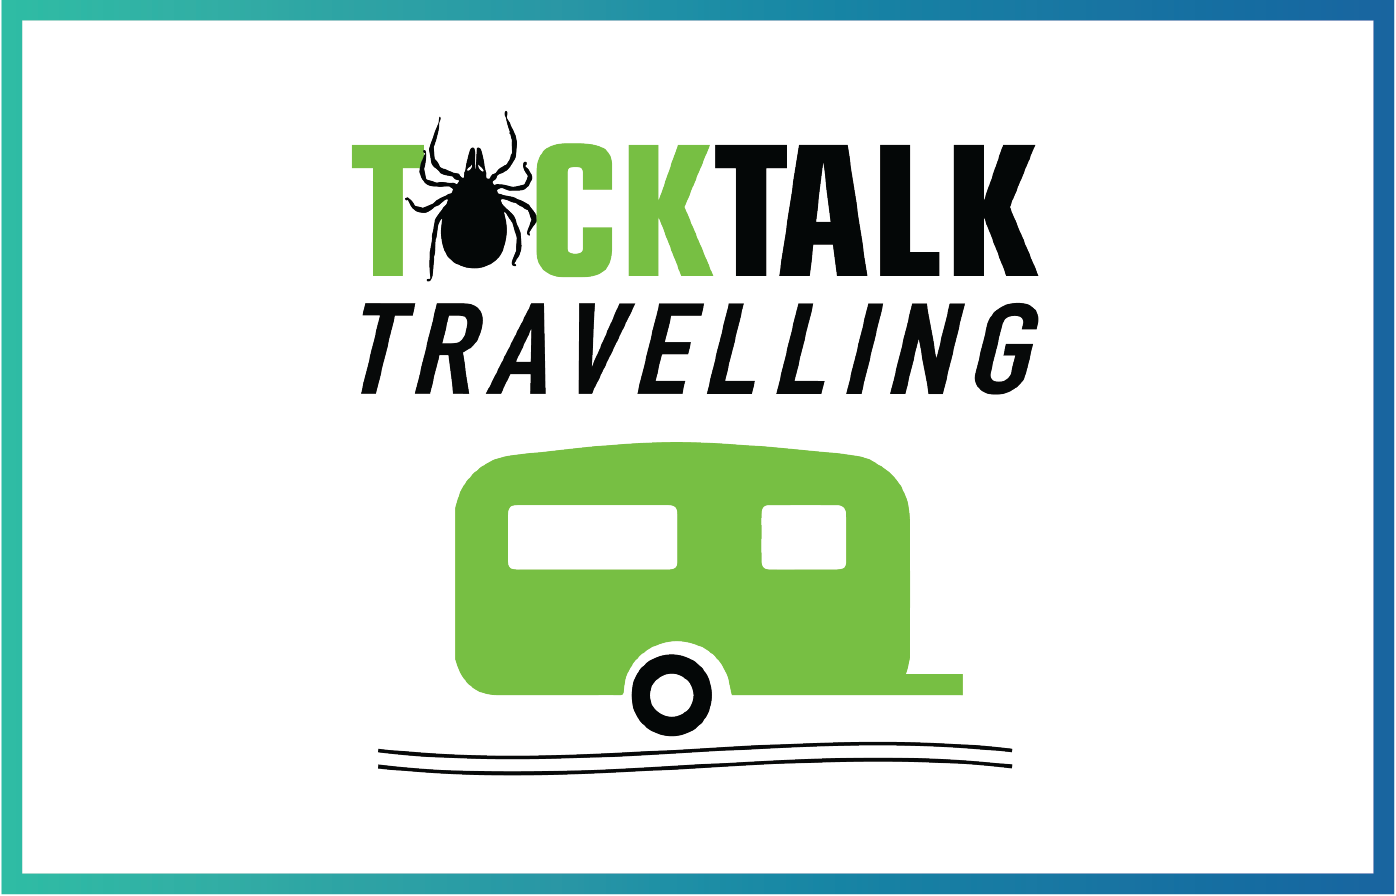 TICKTALK Travelling Logo